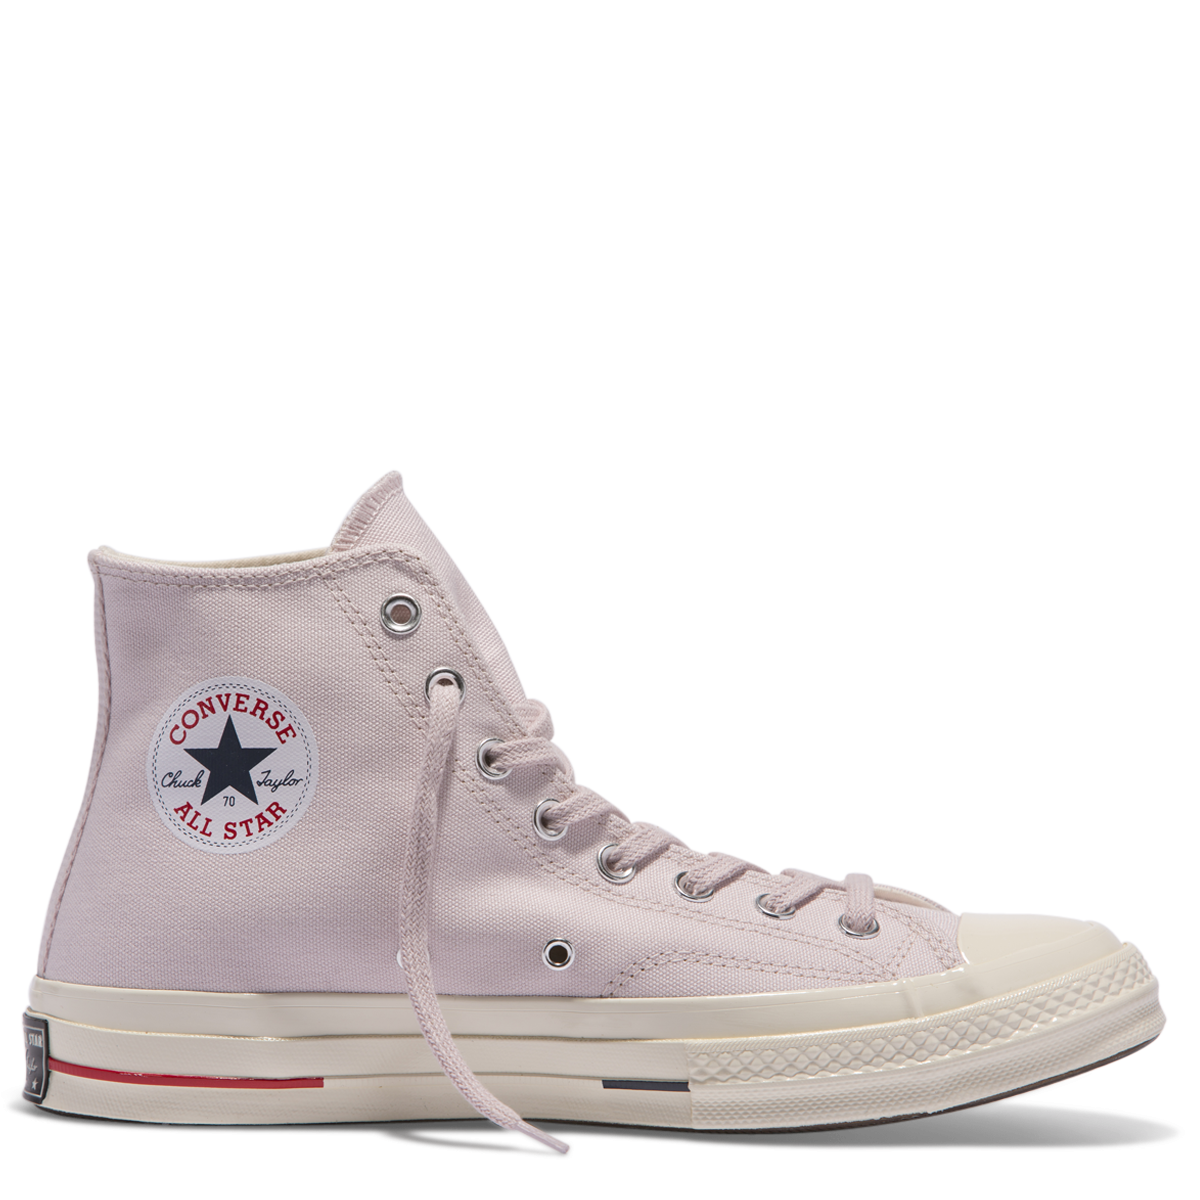 CHUCK TAYLOR ALL STAR 70 HERITAGE COURT HIGH TOP